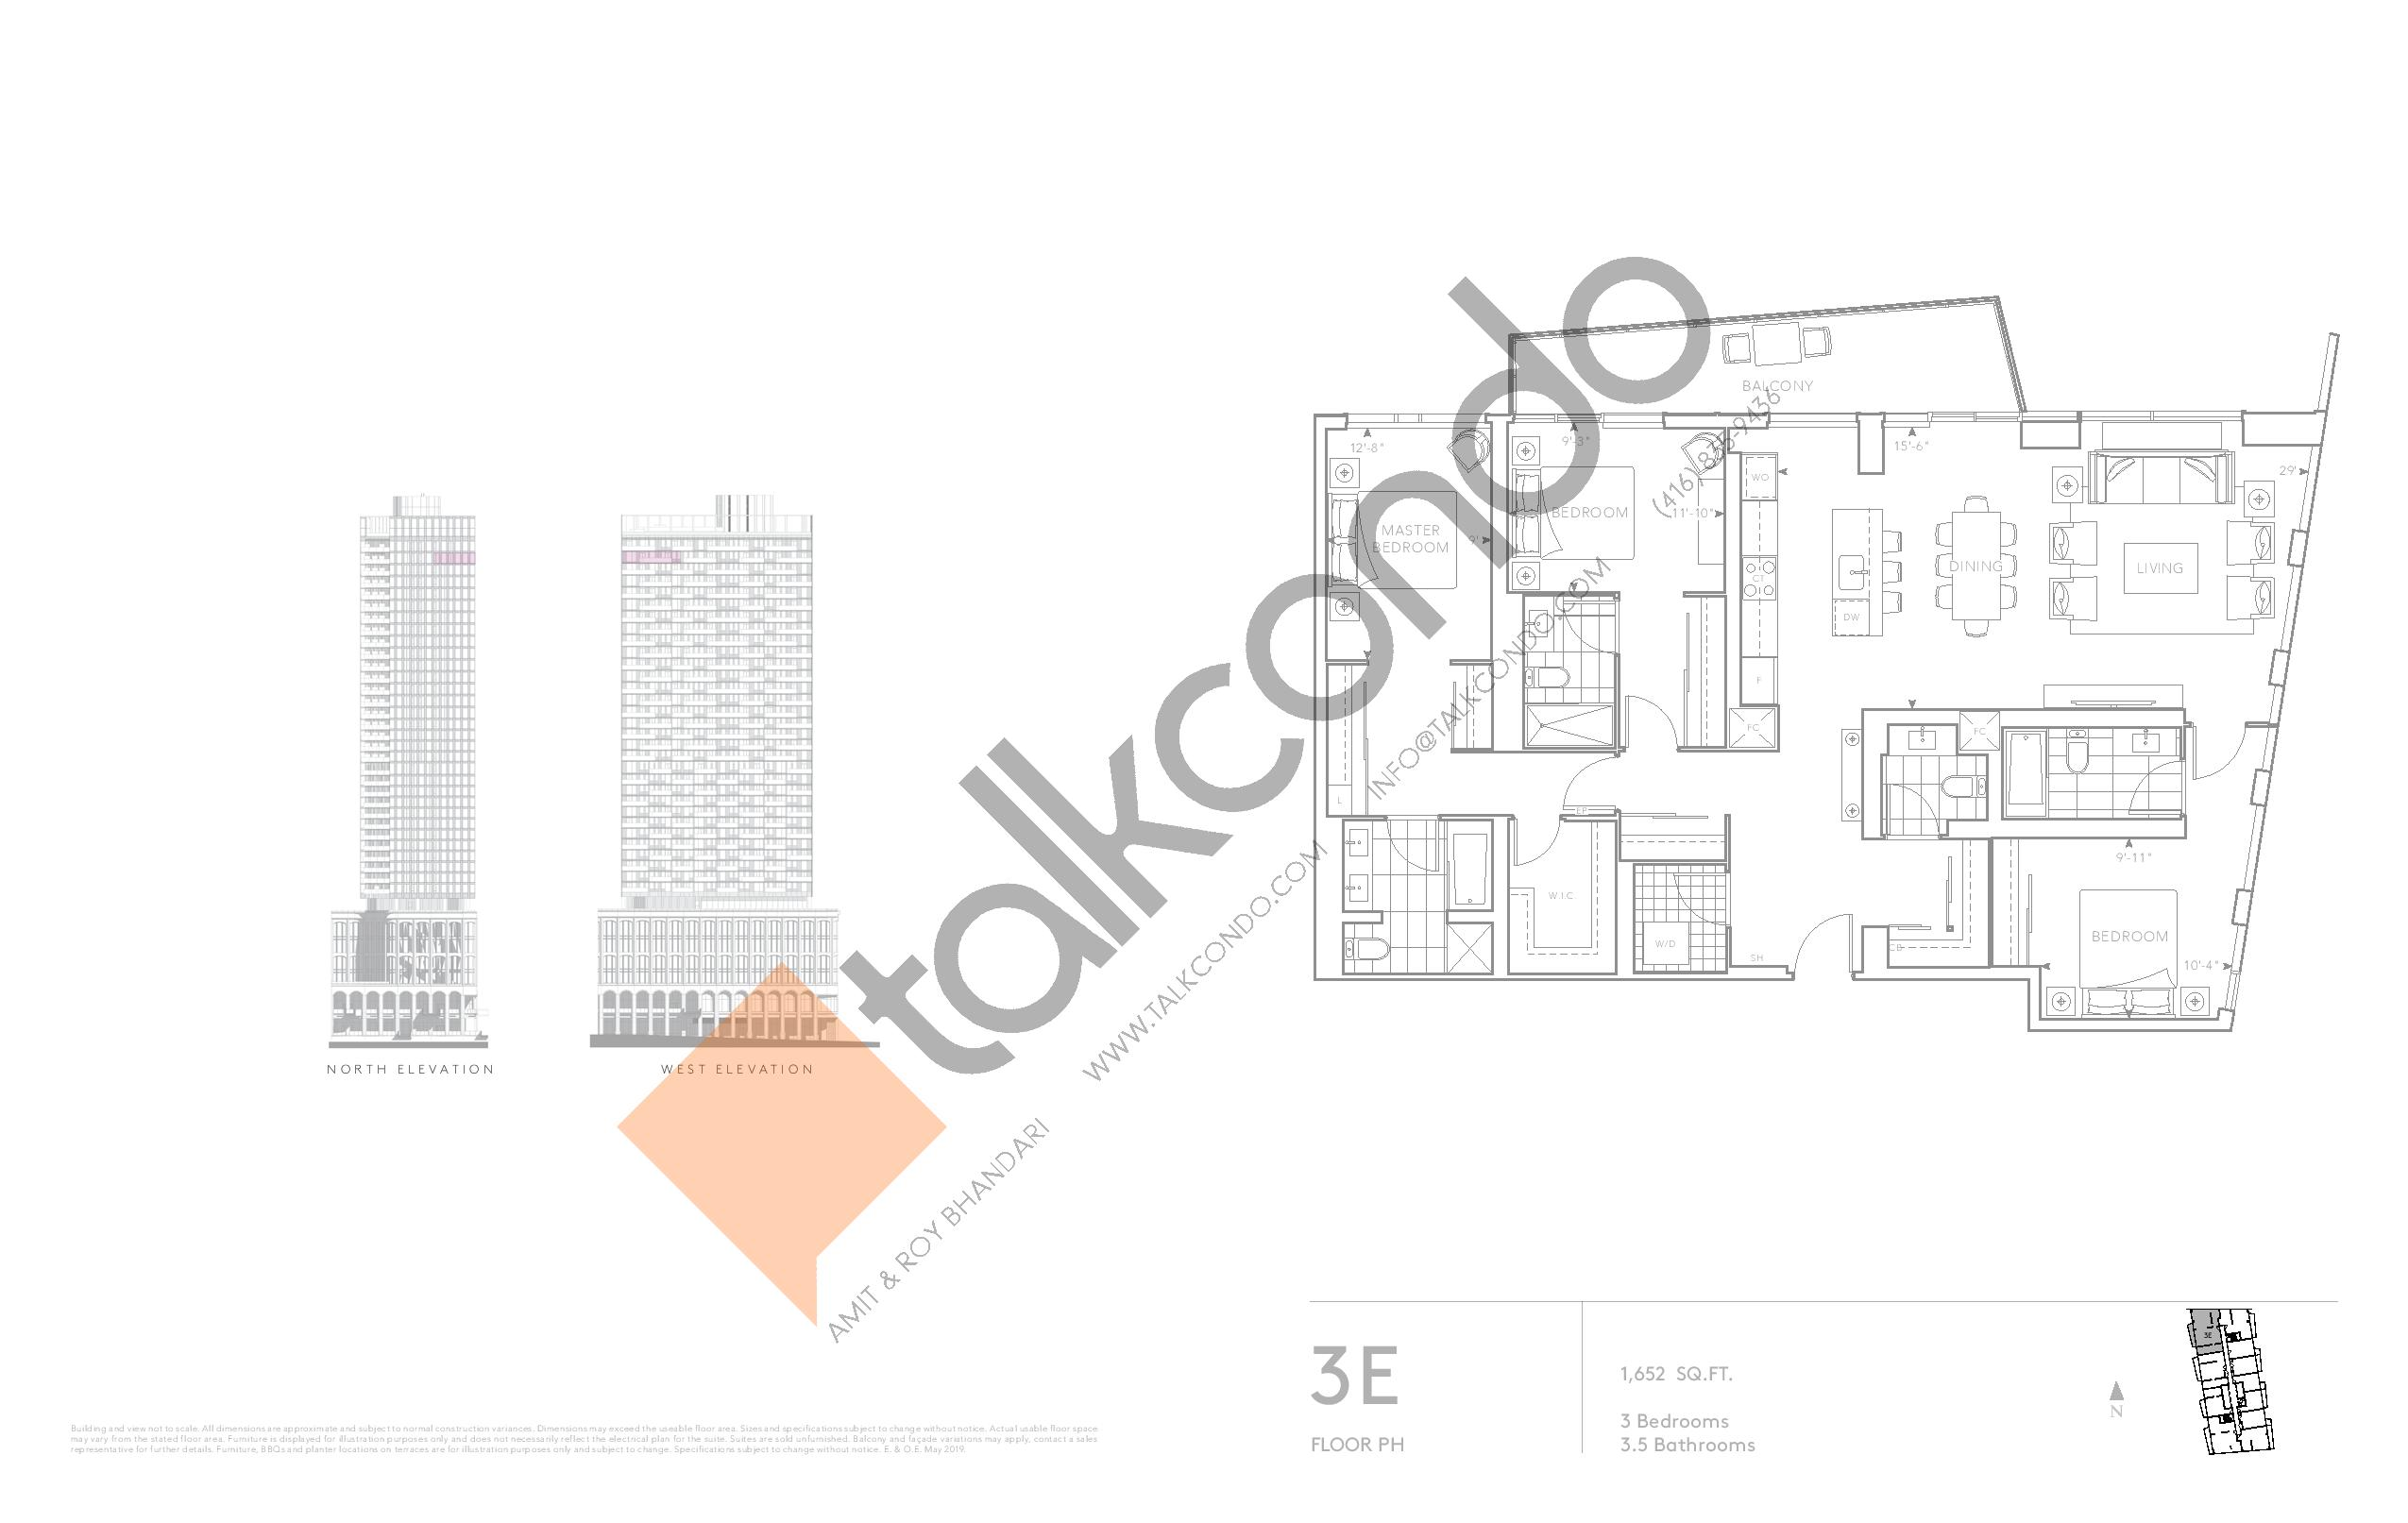 3E - Classic Series Floor Plan at Tridel at The Well Condos - 1652 sq.ft